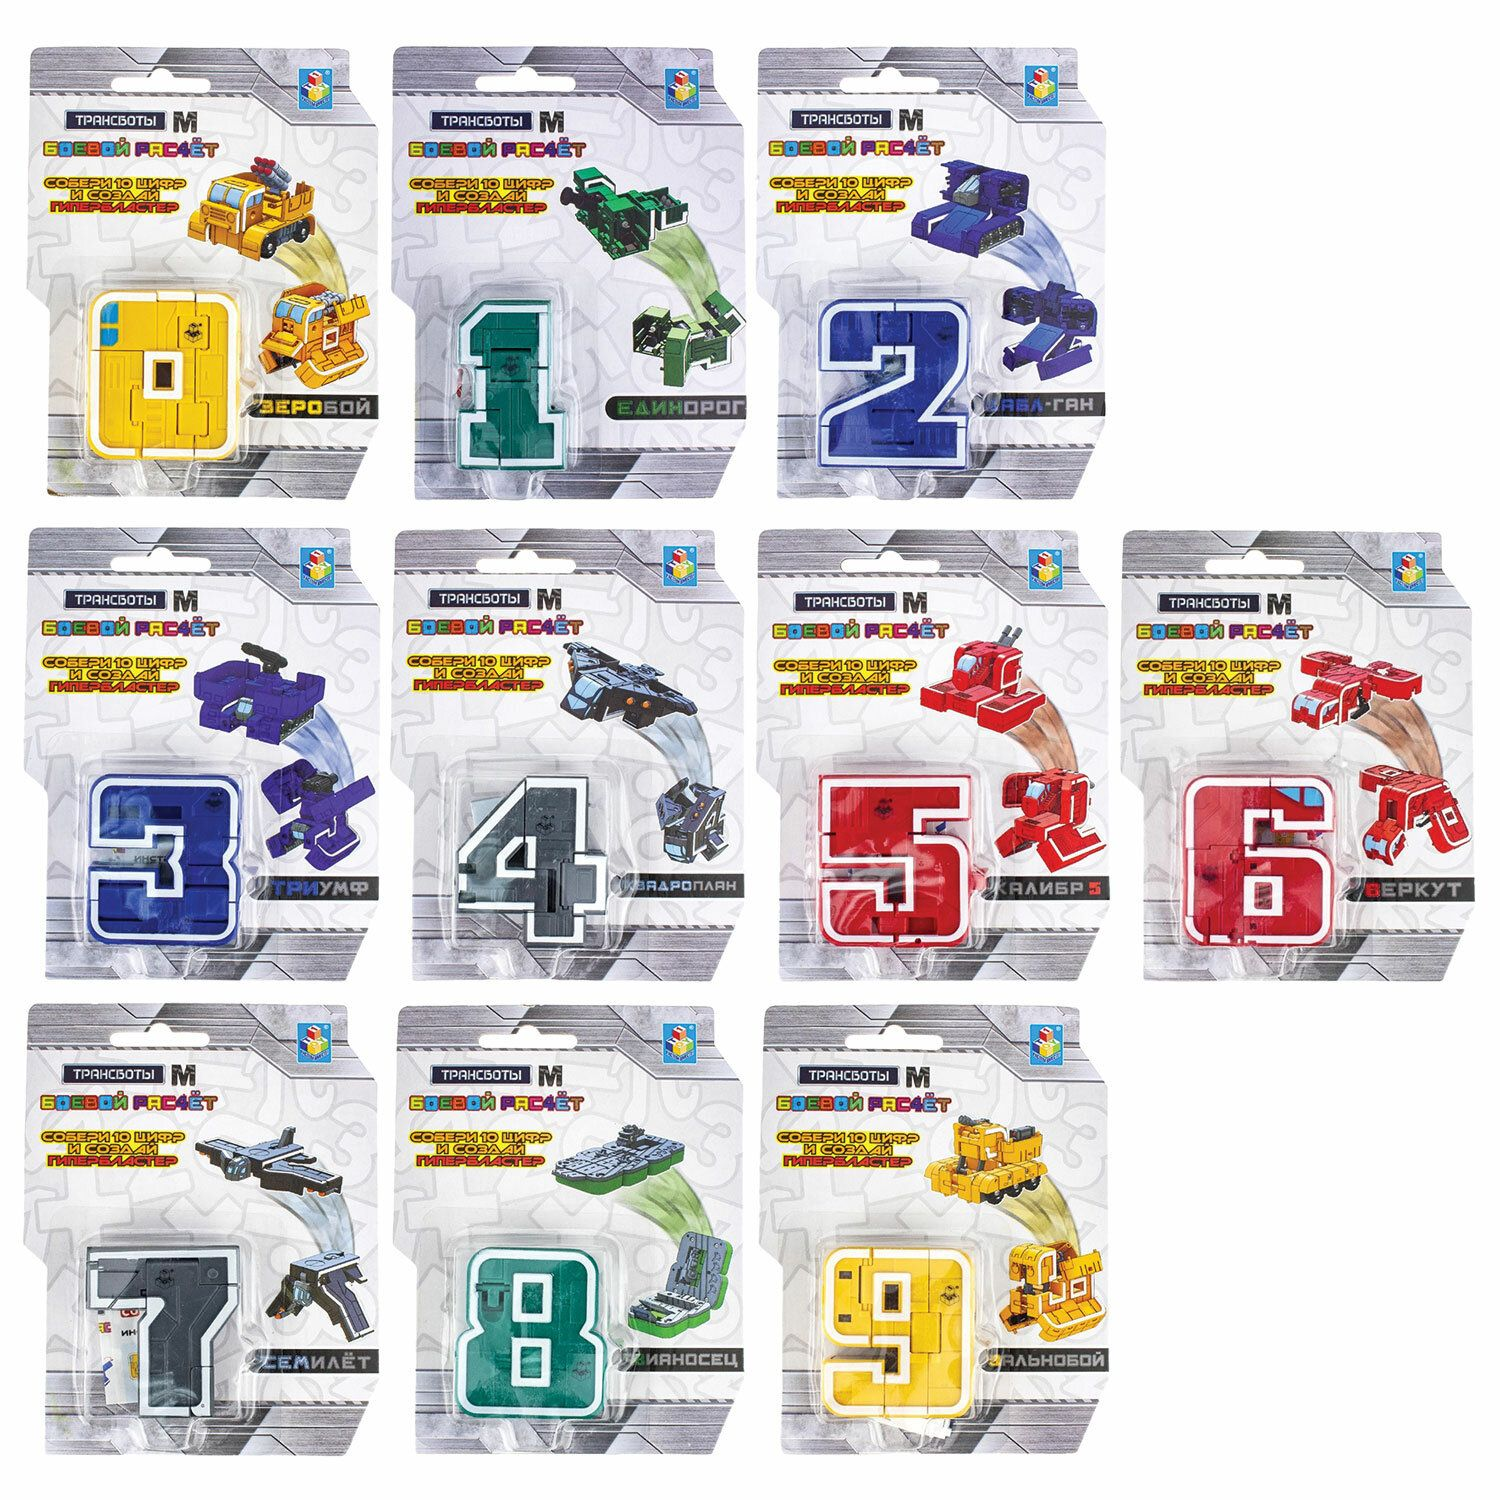 """Toy-transformer Transbots M """"Combat calculation"""", assorted, display, 1TOY"""